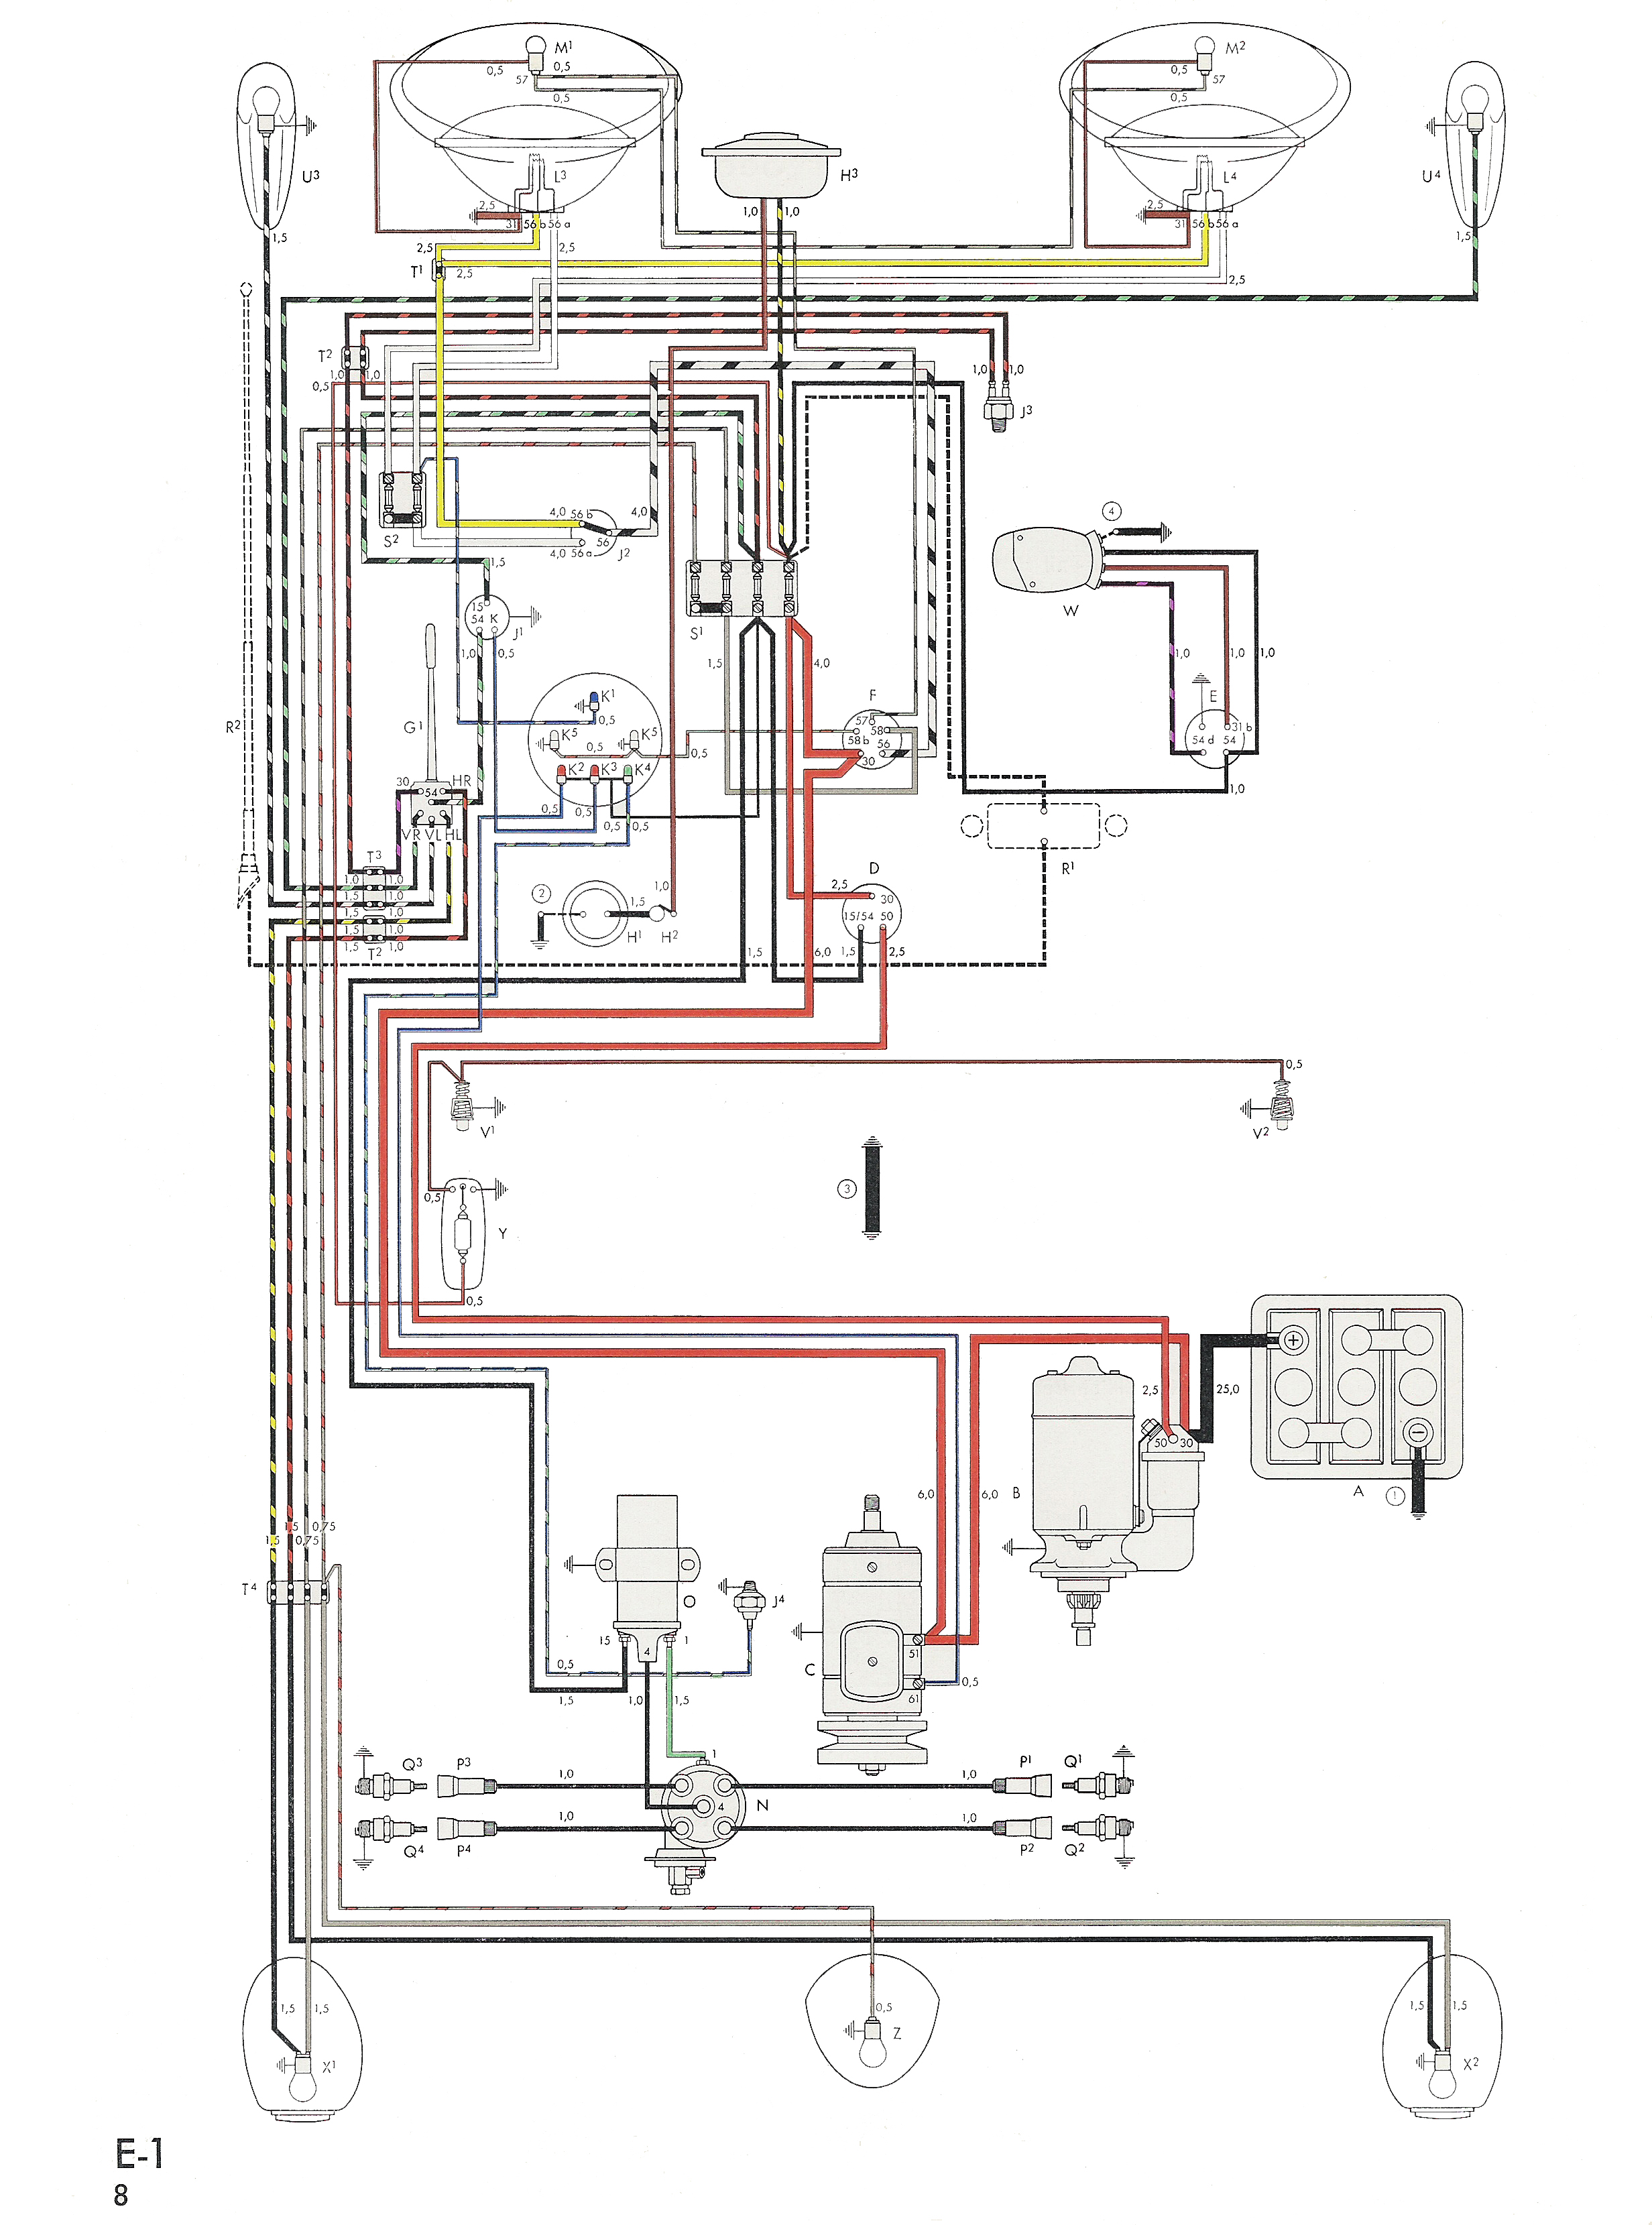 thesamba com type 1 wiring diagrams 2013 vw beetle fuse box diagram vw new beetle  fuse box diagram